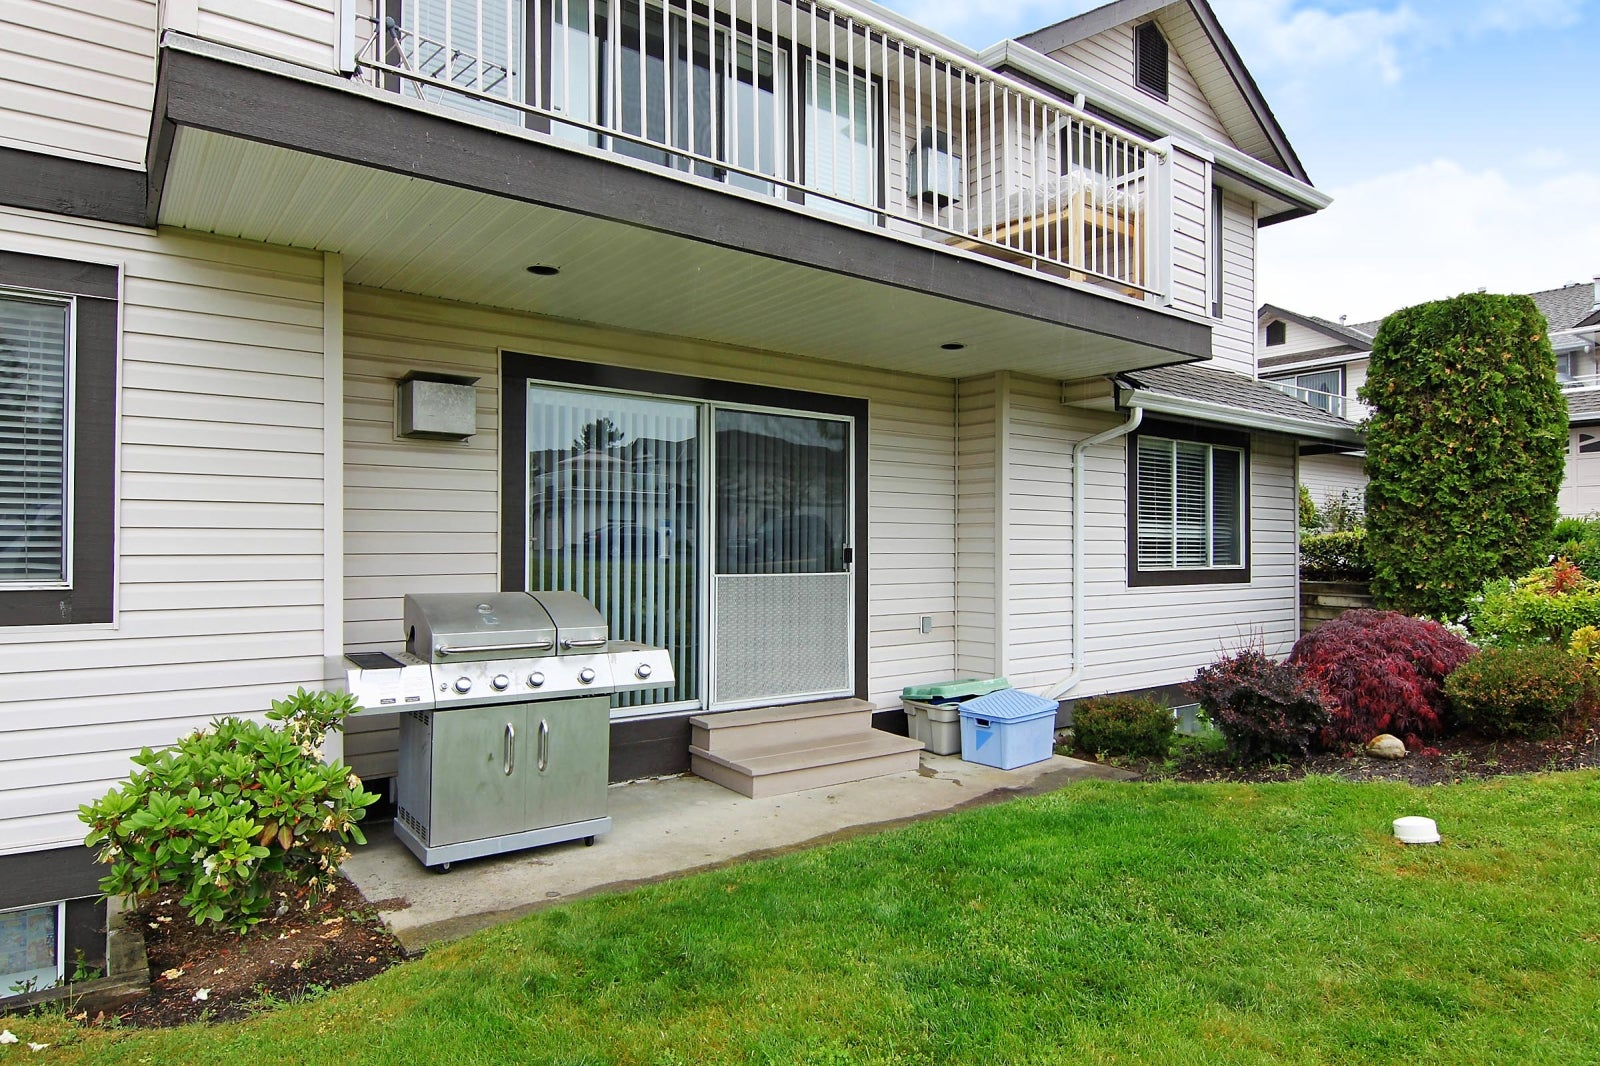 135 3080 TOWNLINE ROAD - Abbotsford West Townhouse for sale, 4 Bedrooms (R2369944) #19